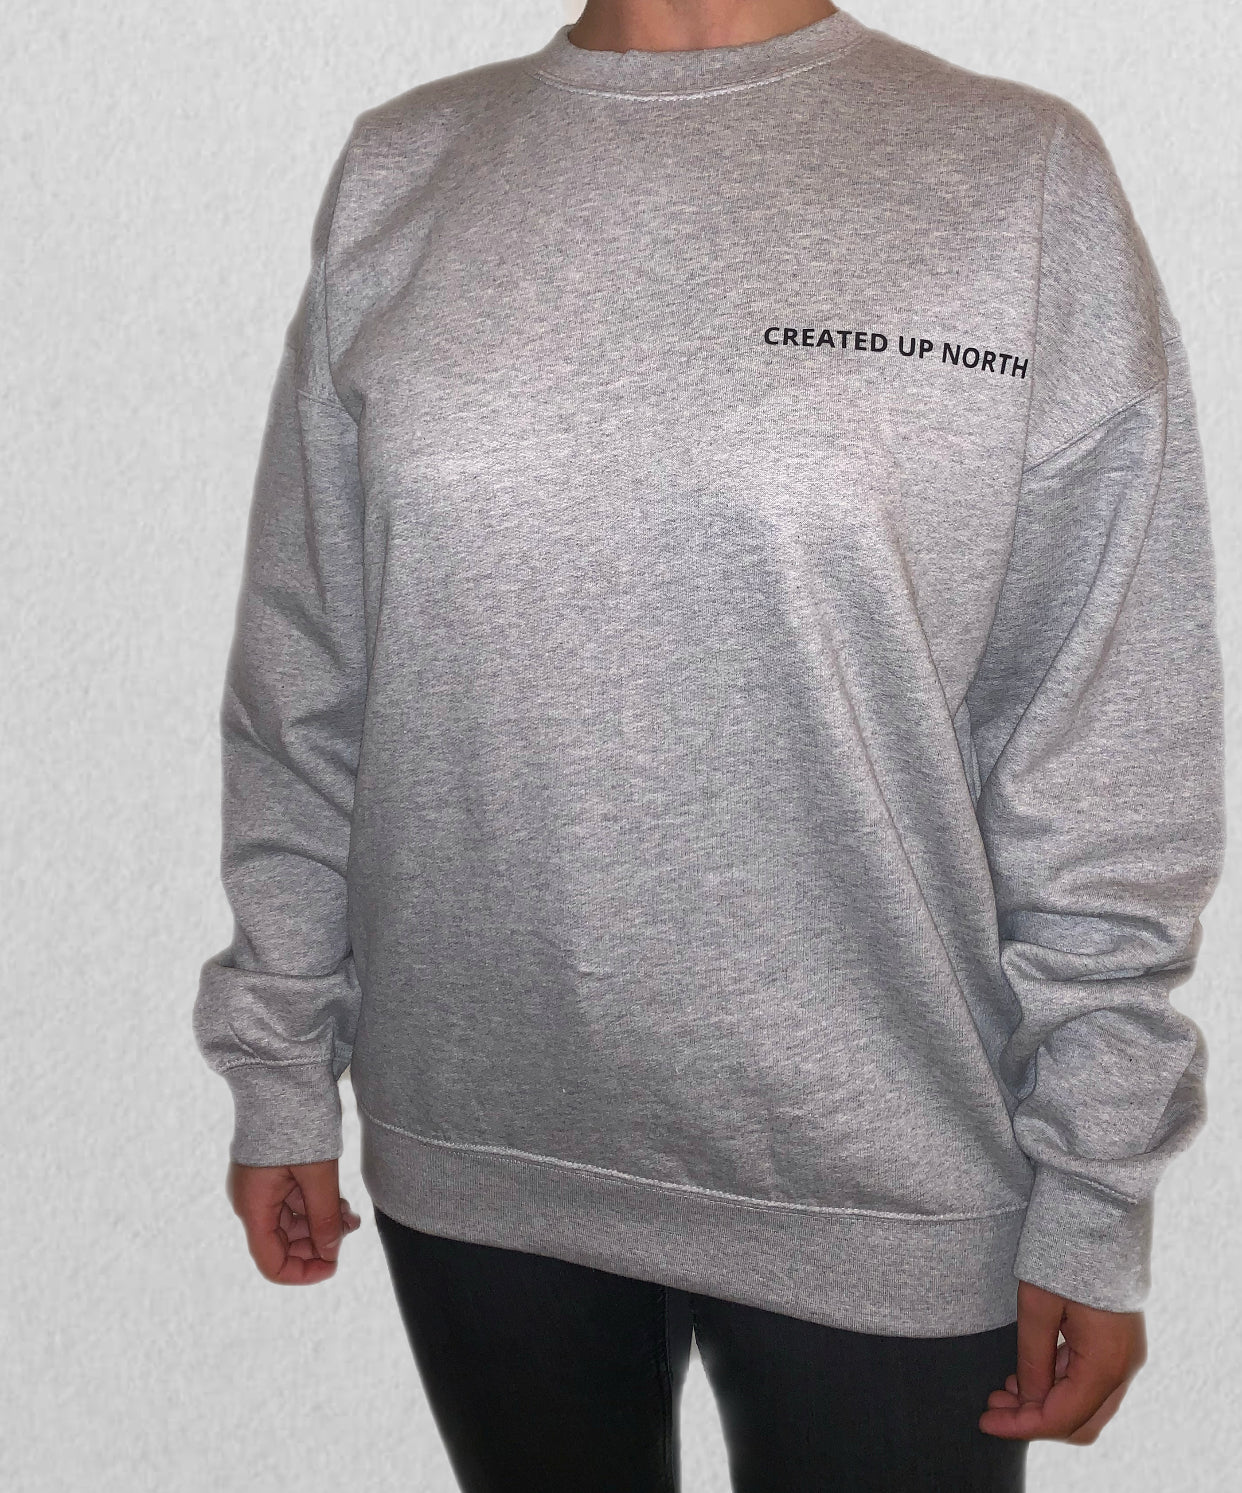 Womens Grey Sweatshirt